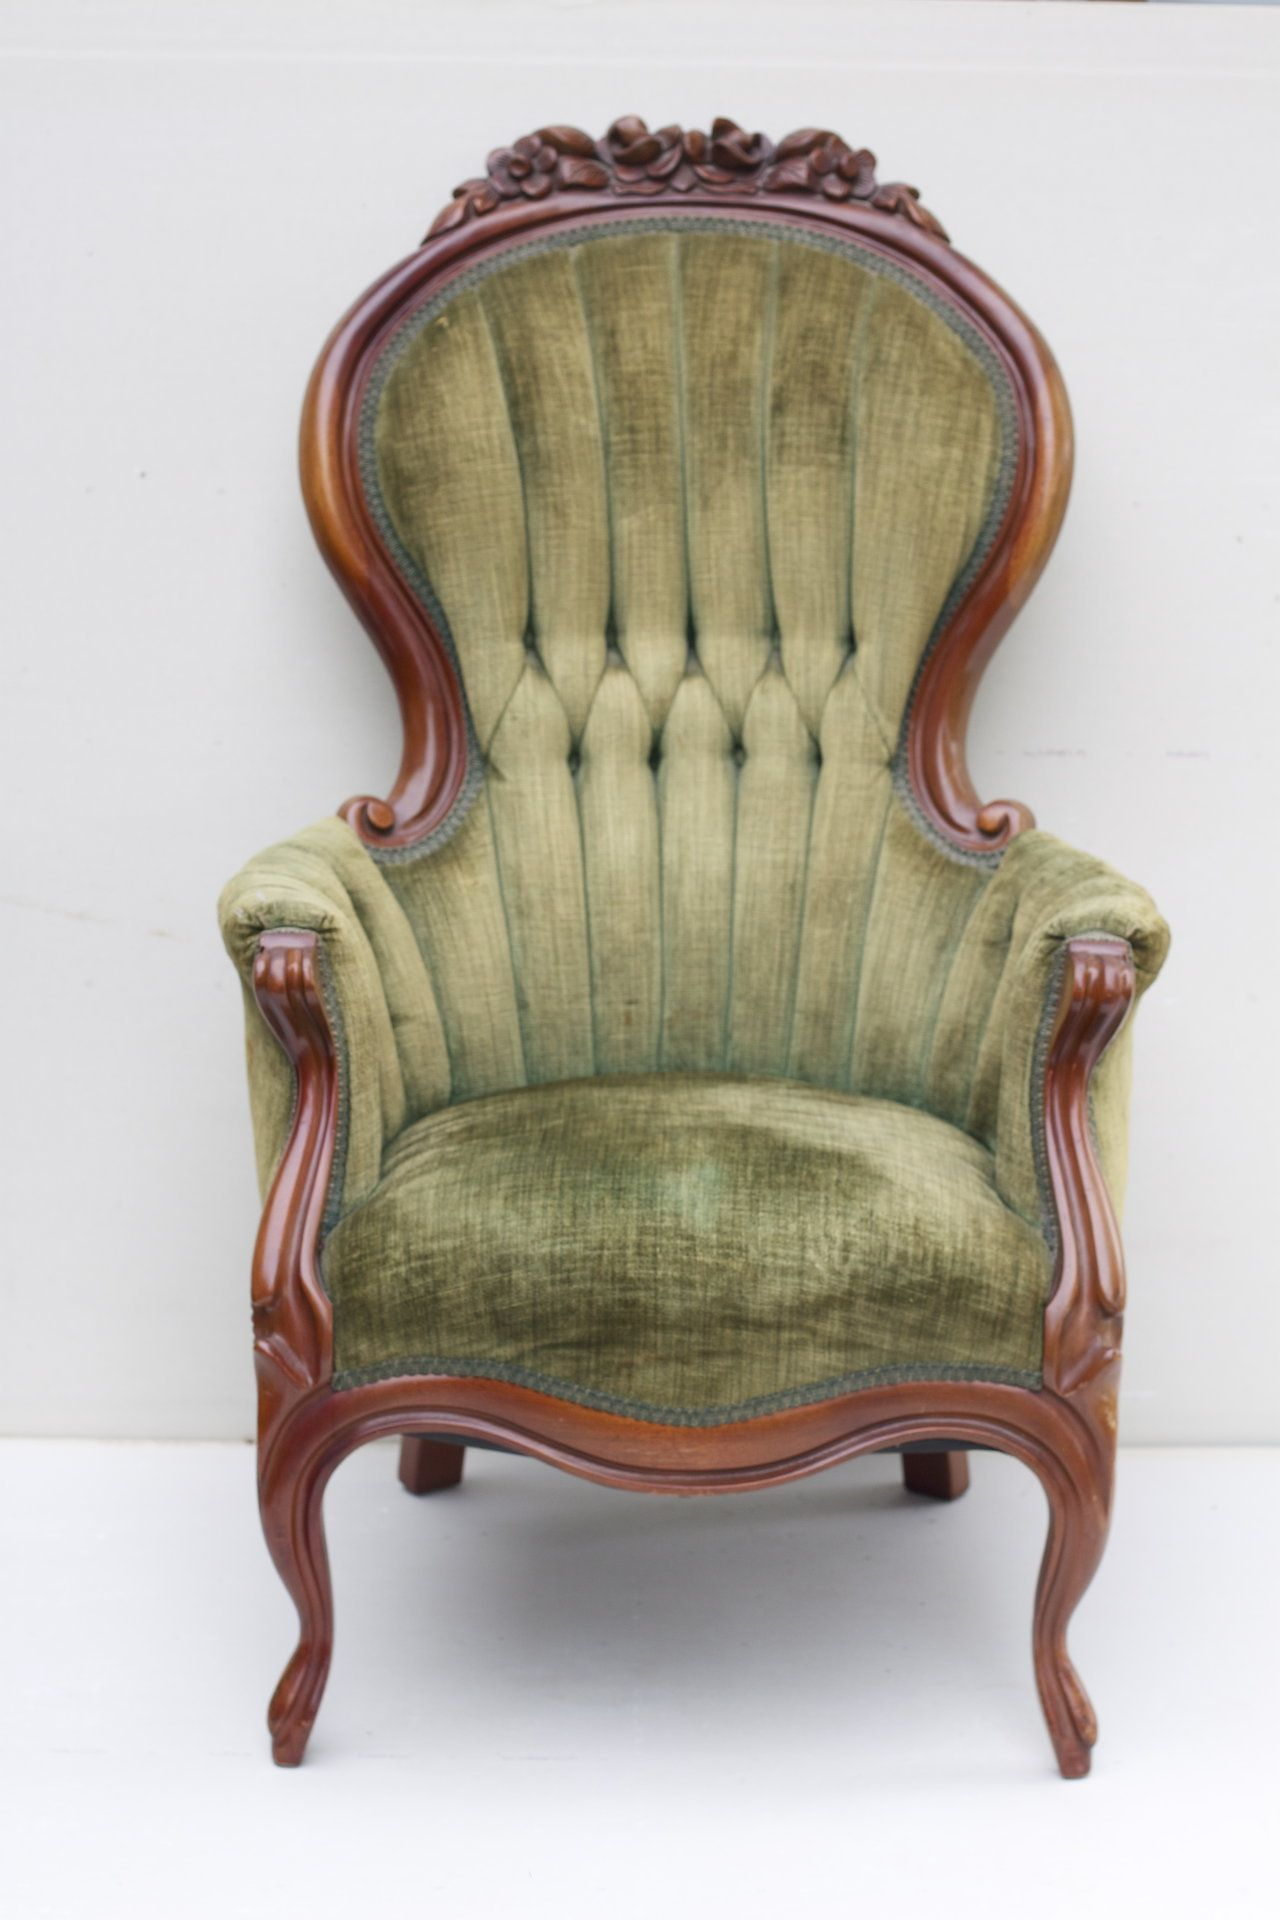 Antique Green Old Velvet Seat And Rustic Wooden Frames High Back Chair As Decorate Obsolete Designs